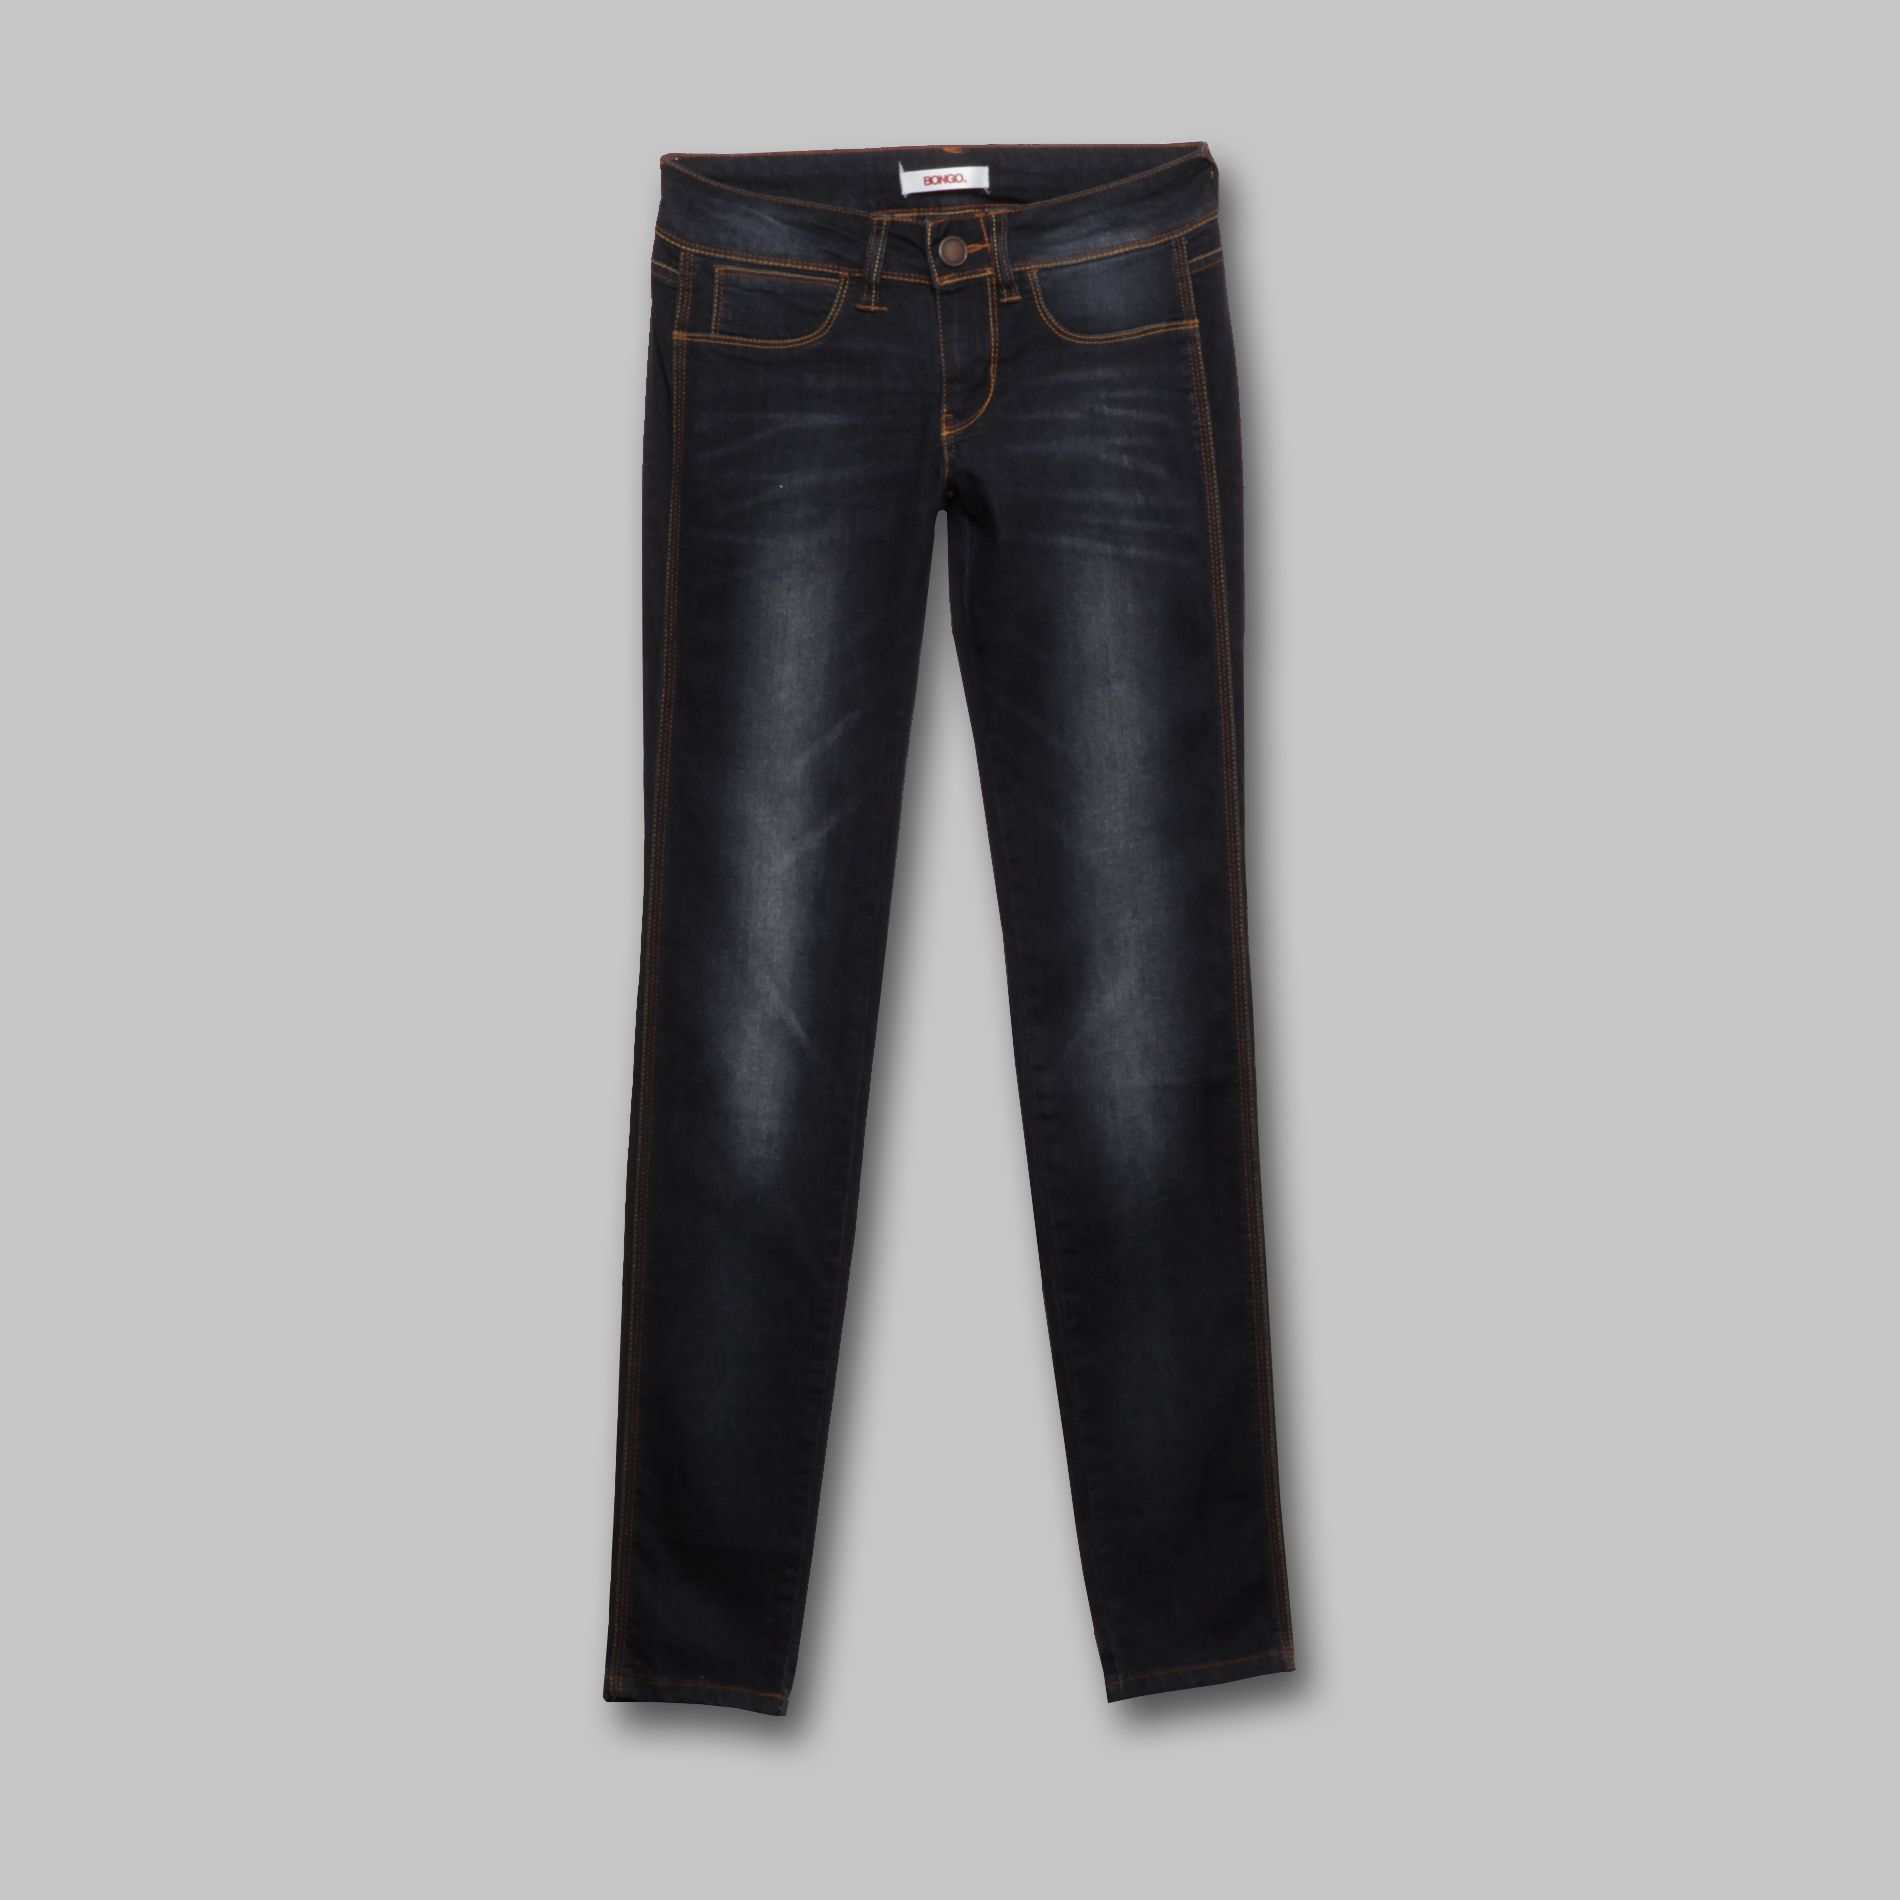 Bongo Junior's Jeans Second Skin Dark Rinse at Sears.com